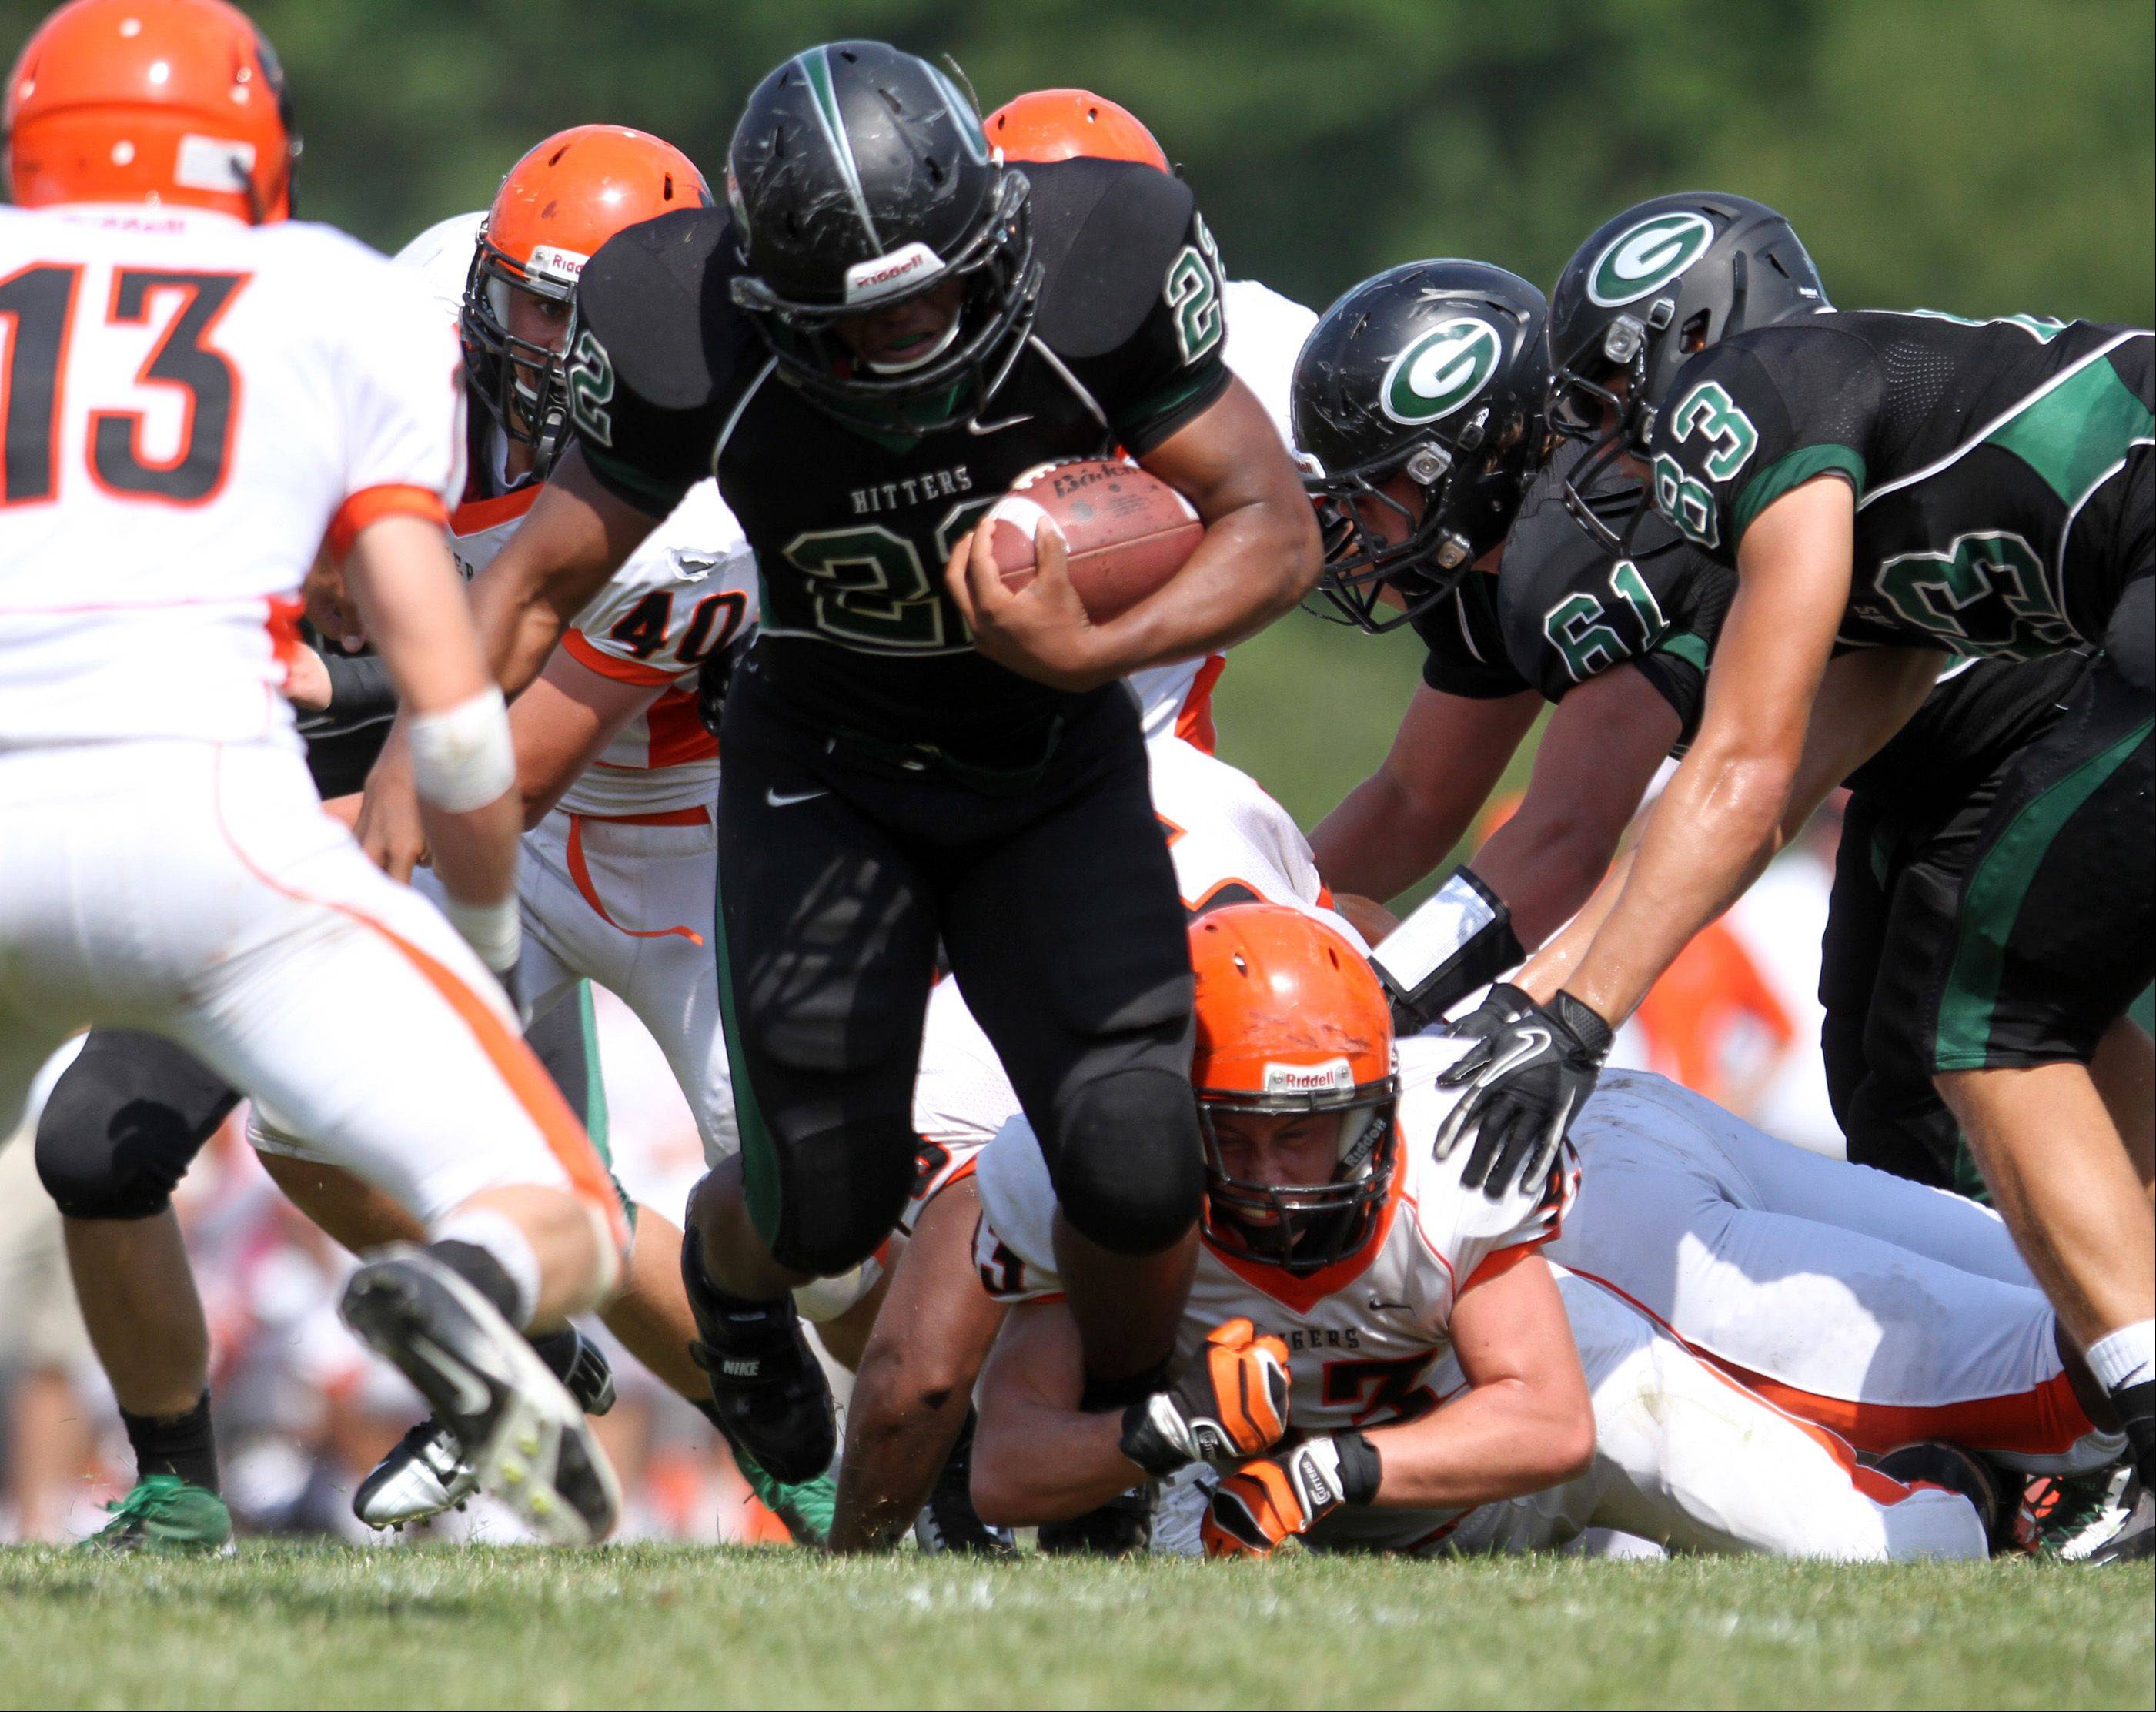 Glenbard West running back Devante Toney runs up the middle against Wheaton Warrenville South at Glenbard West on Saturday, August 25.